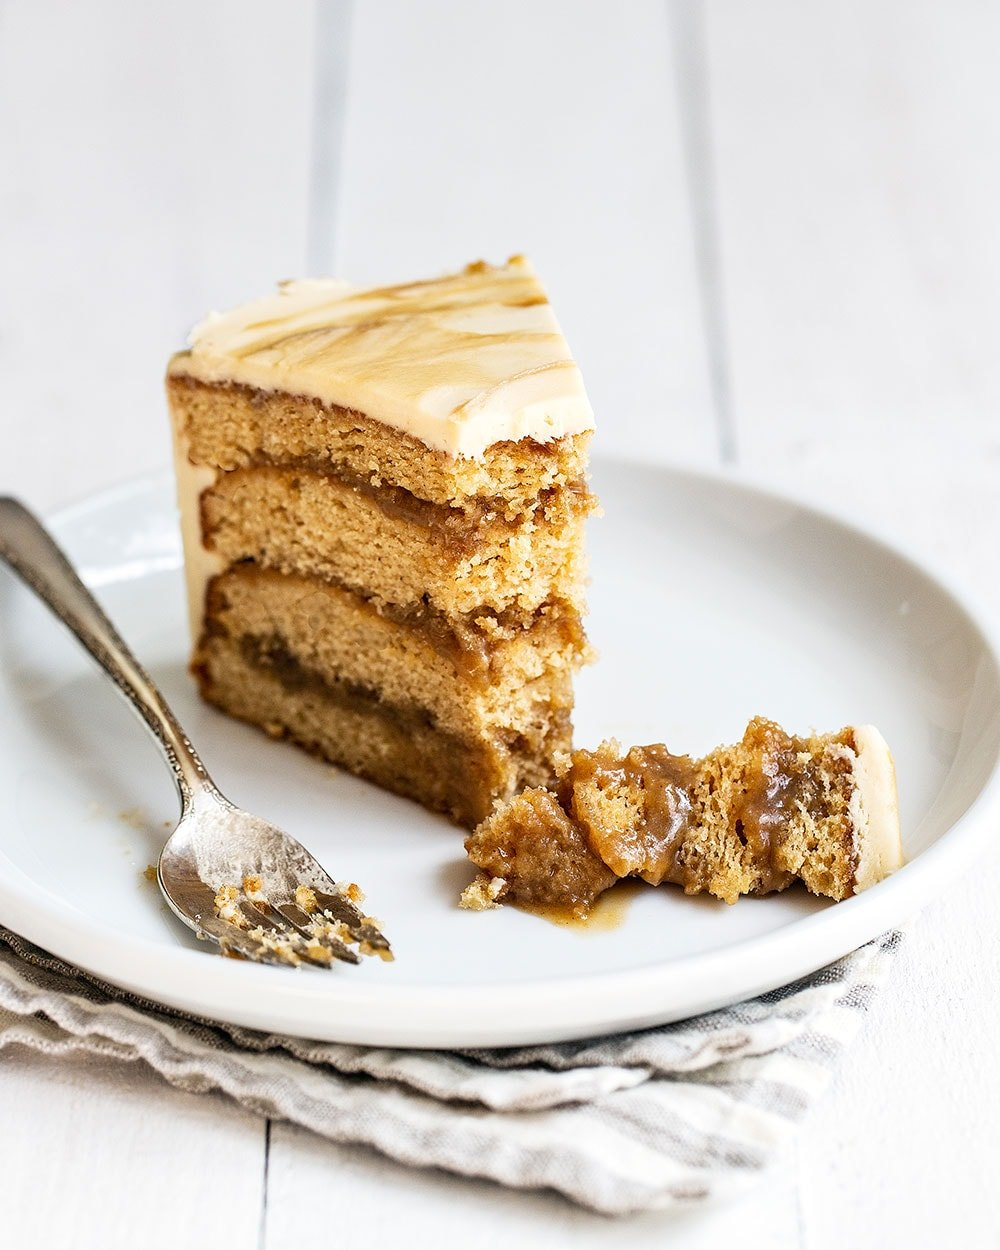 Ultra rich, tender, and moist Butterscotch layer cake slice on a plate with a bite taken out